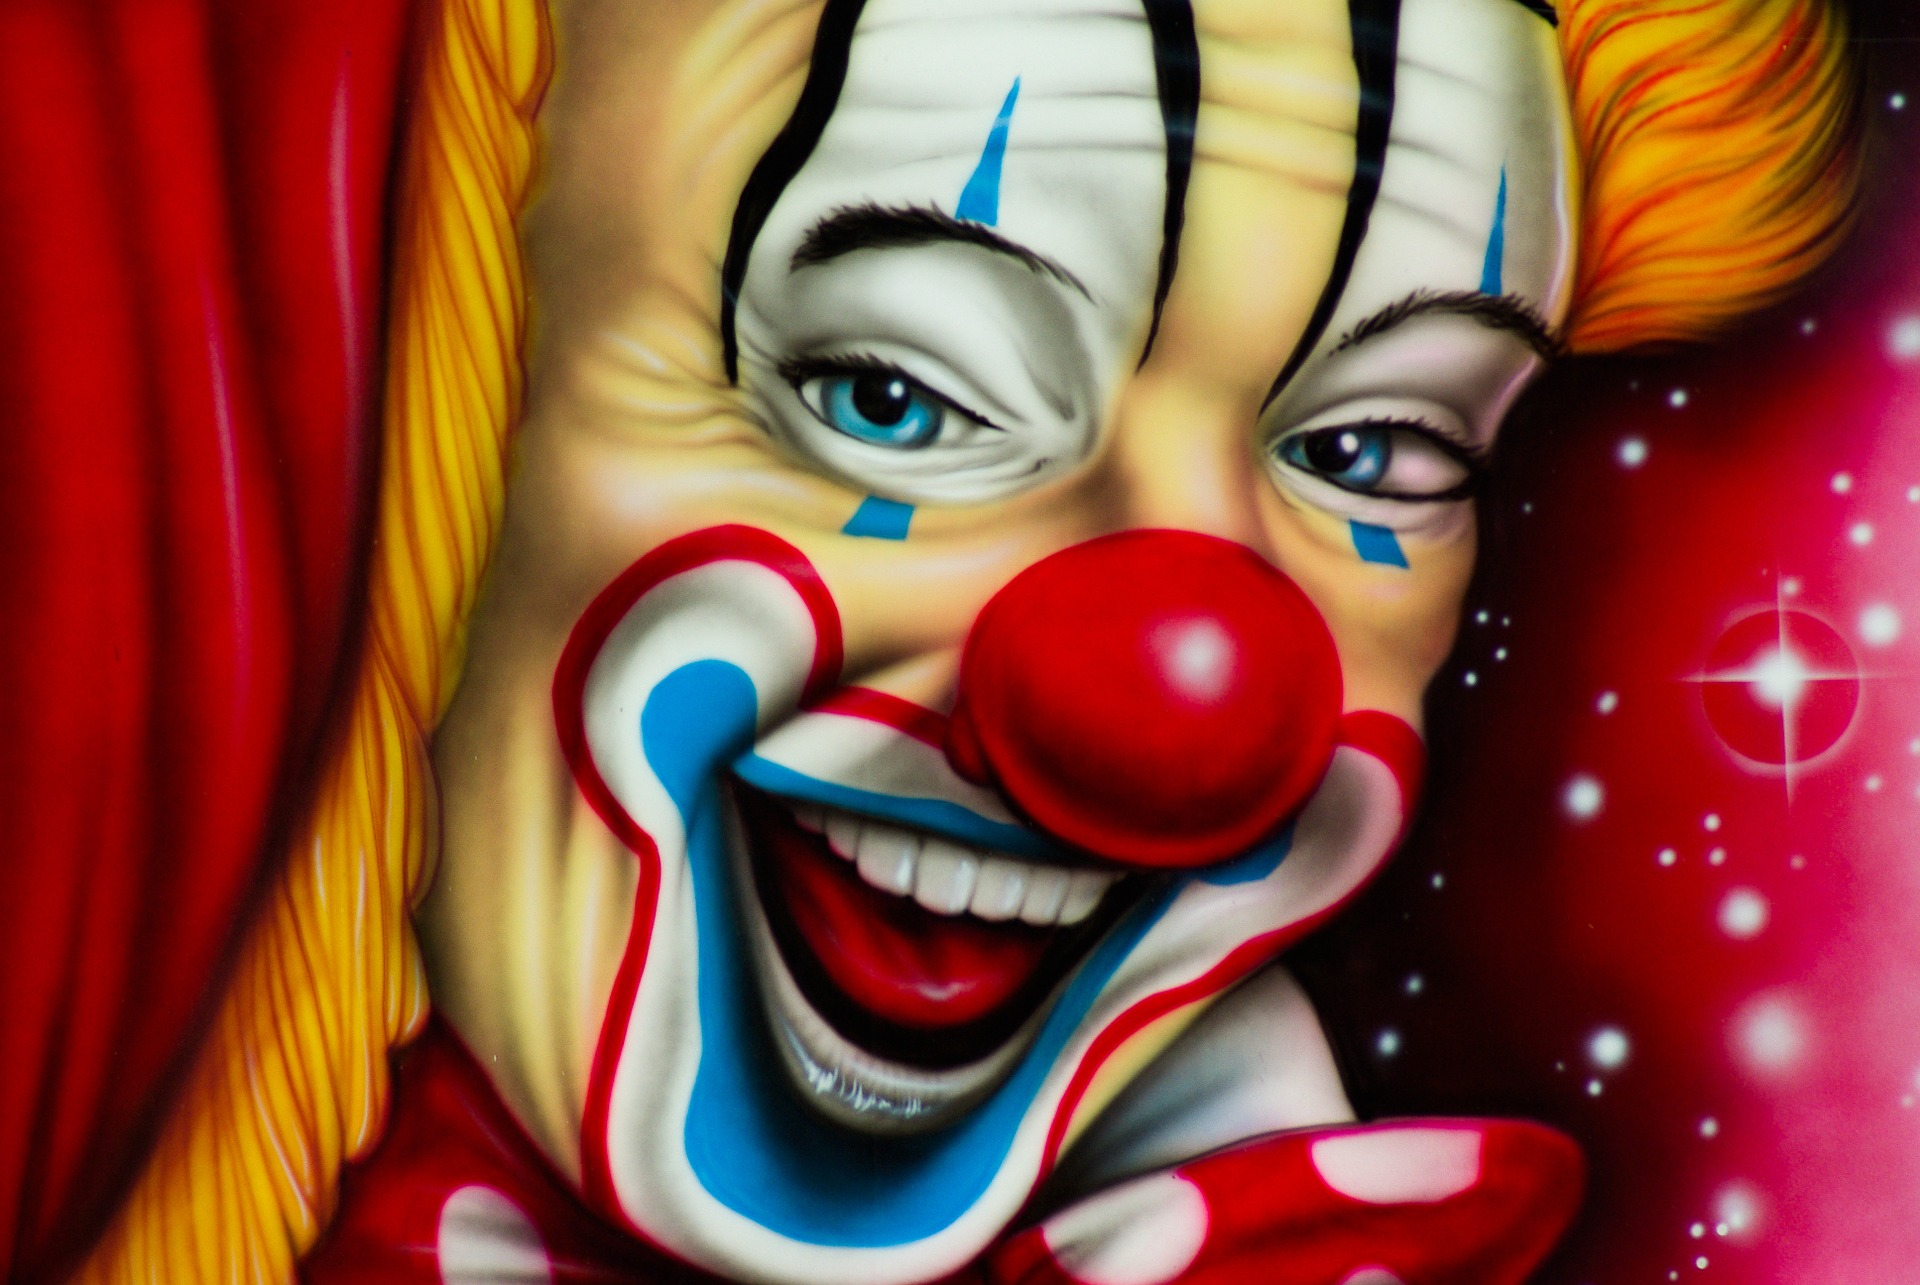 a clown's face